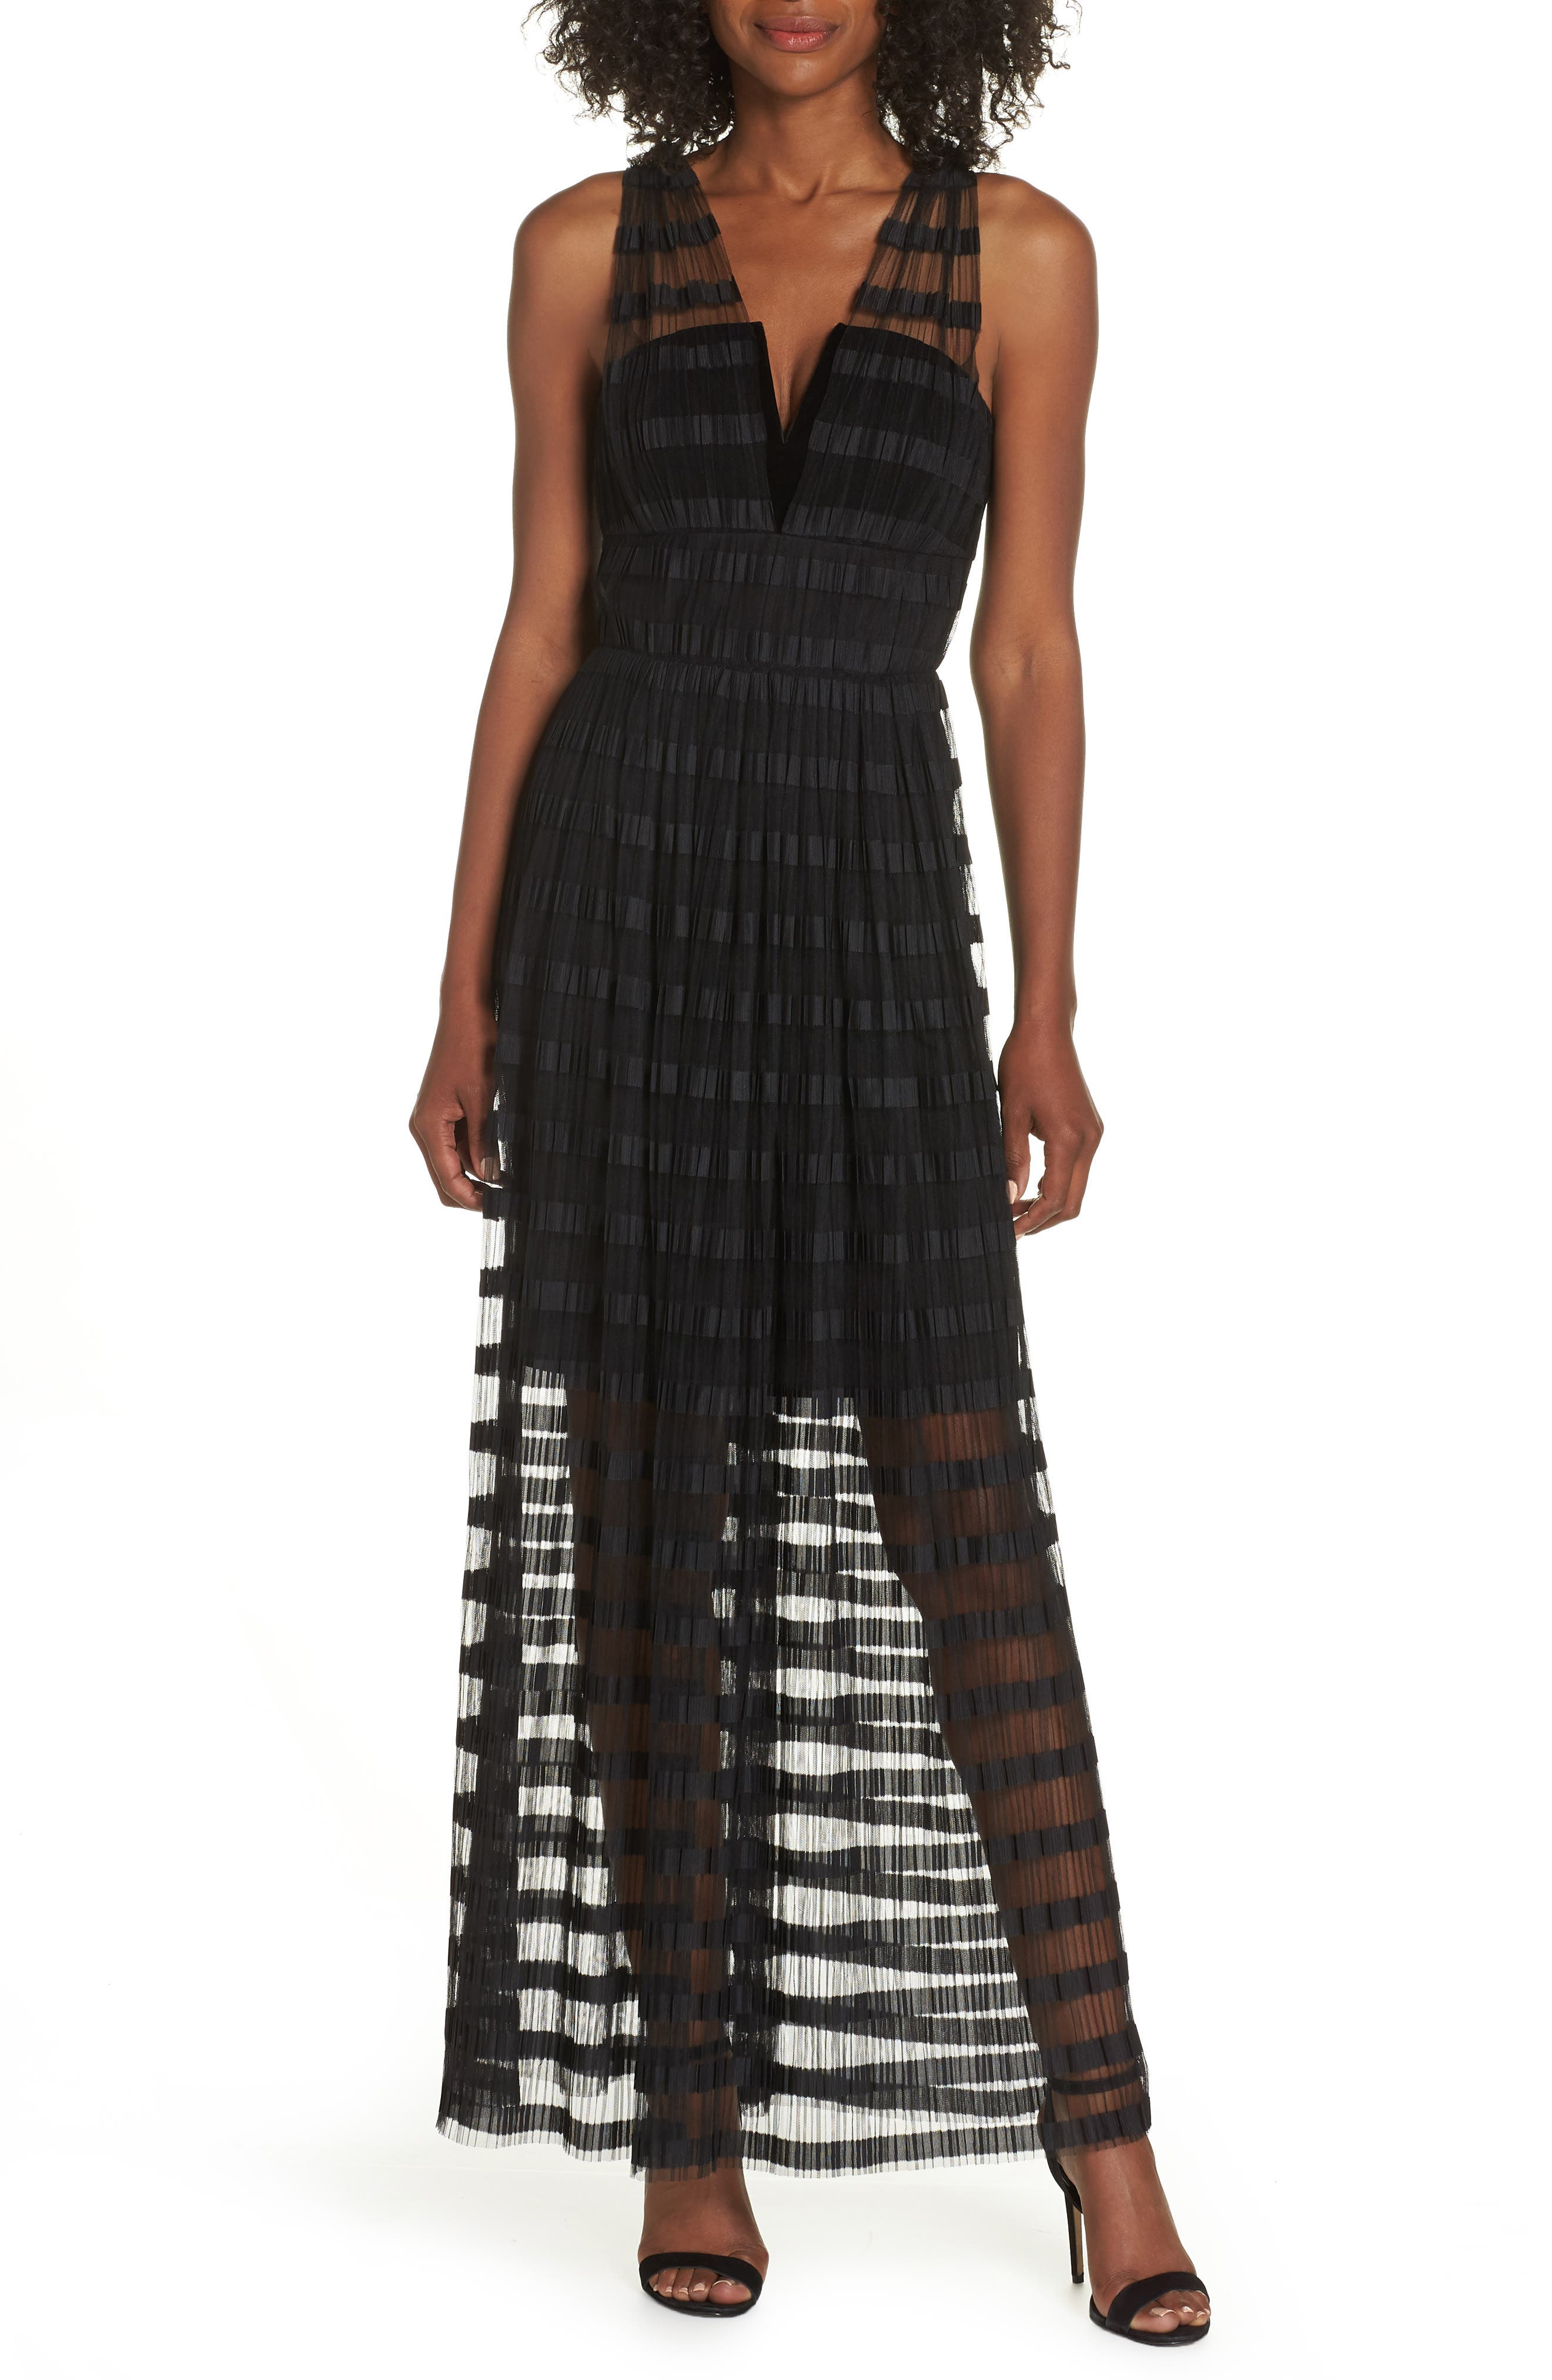 ADELYN RAE Woven Illusion Dress in Black